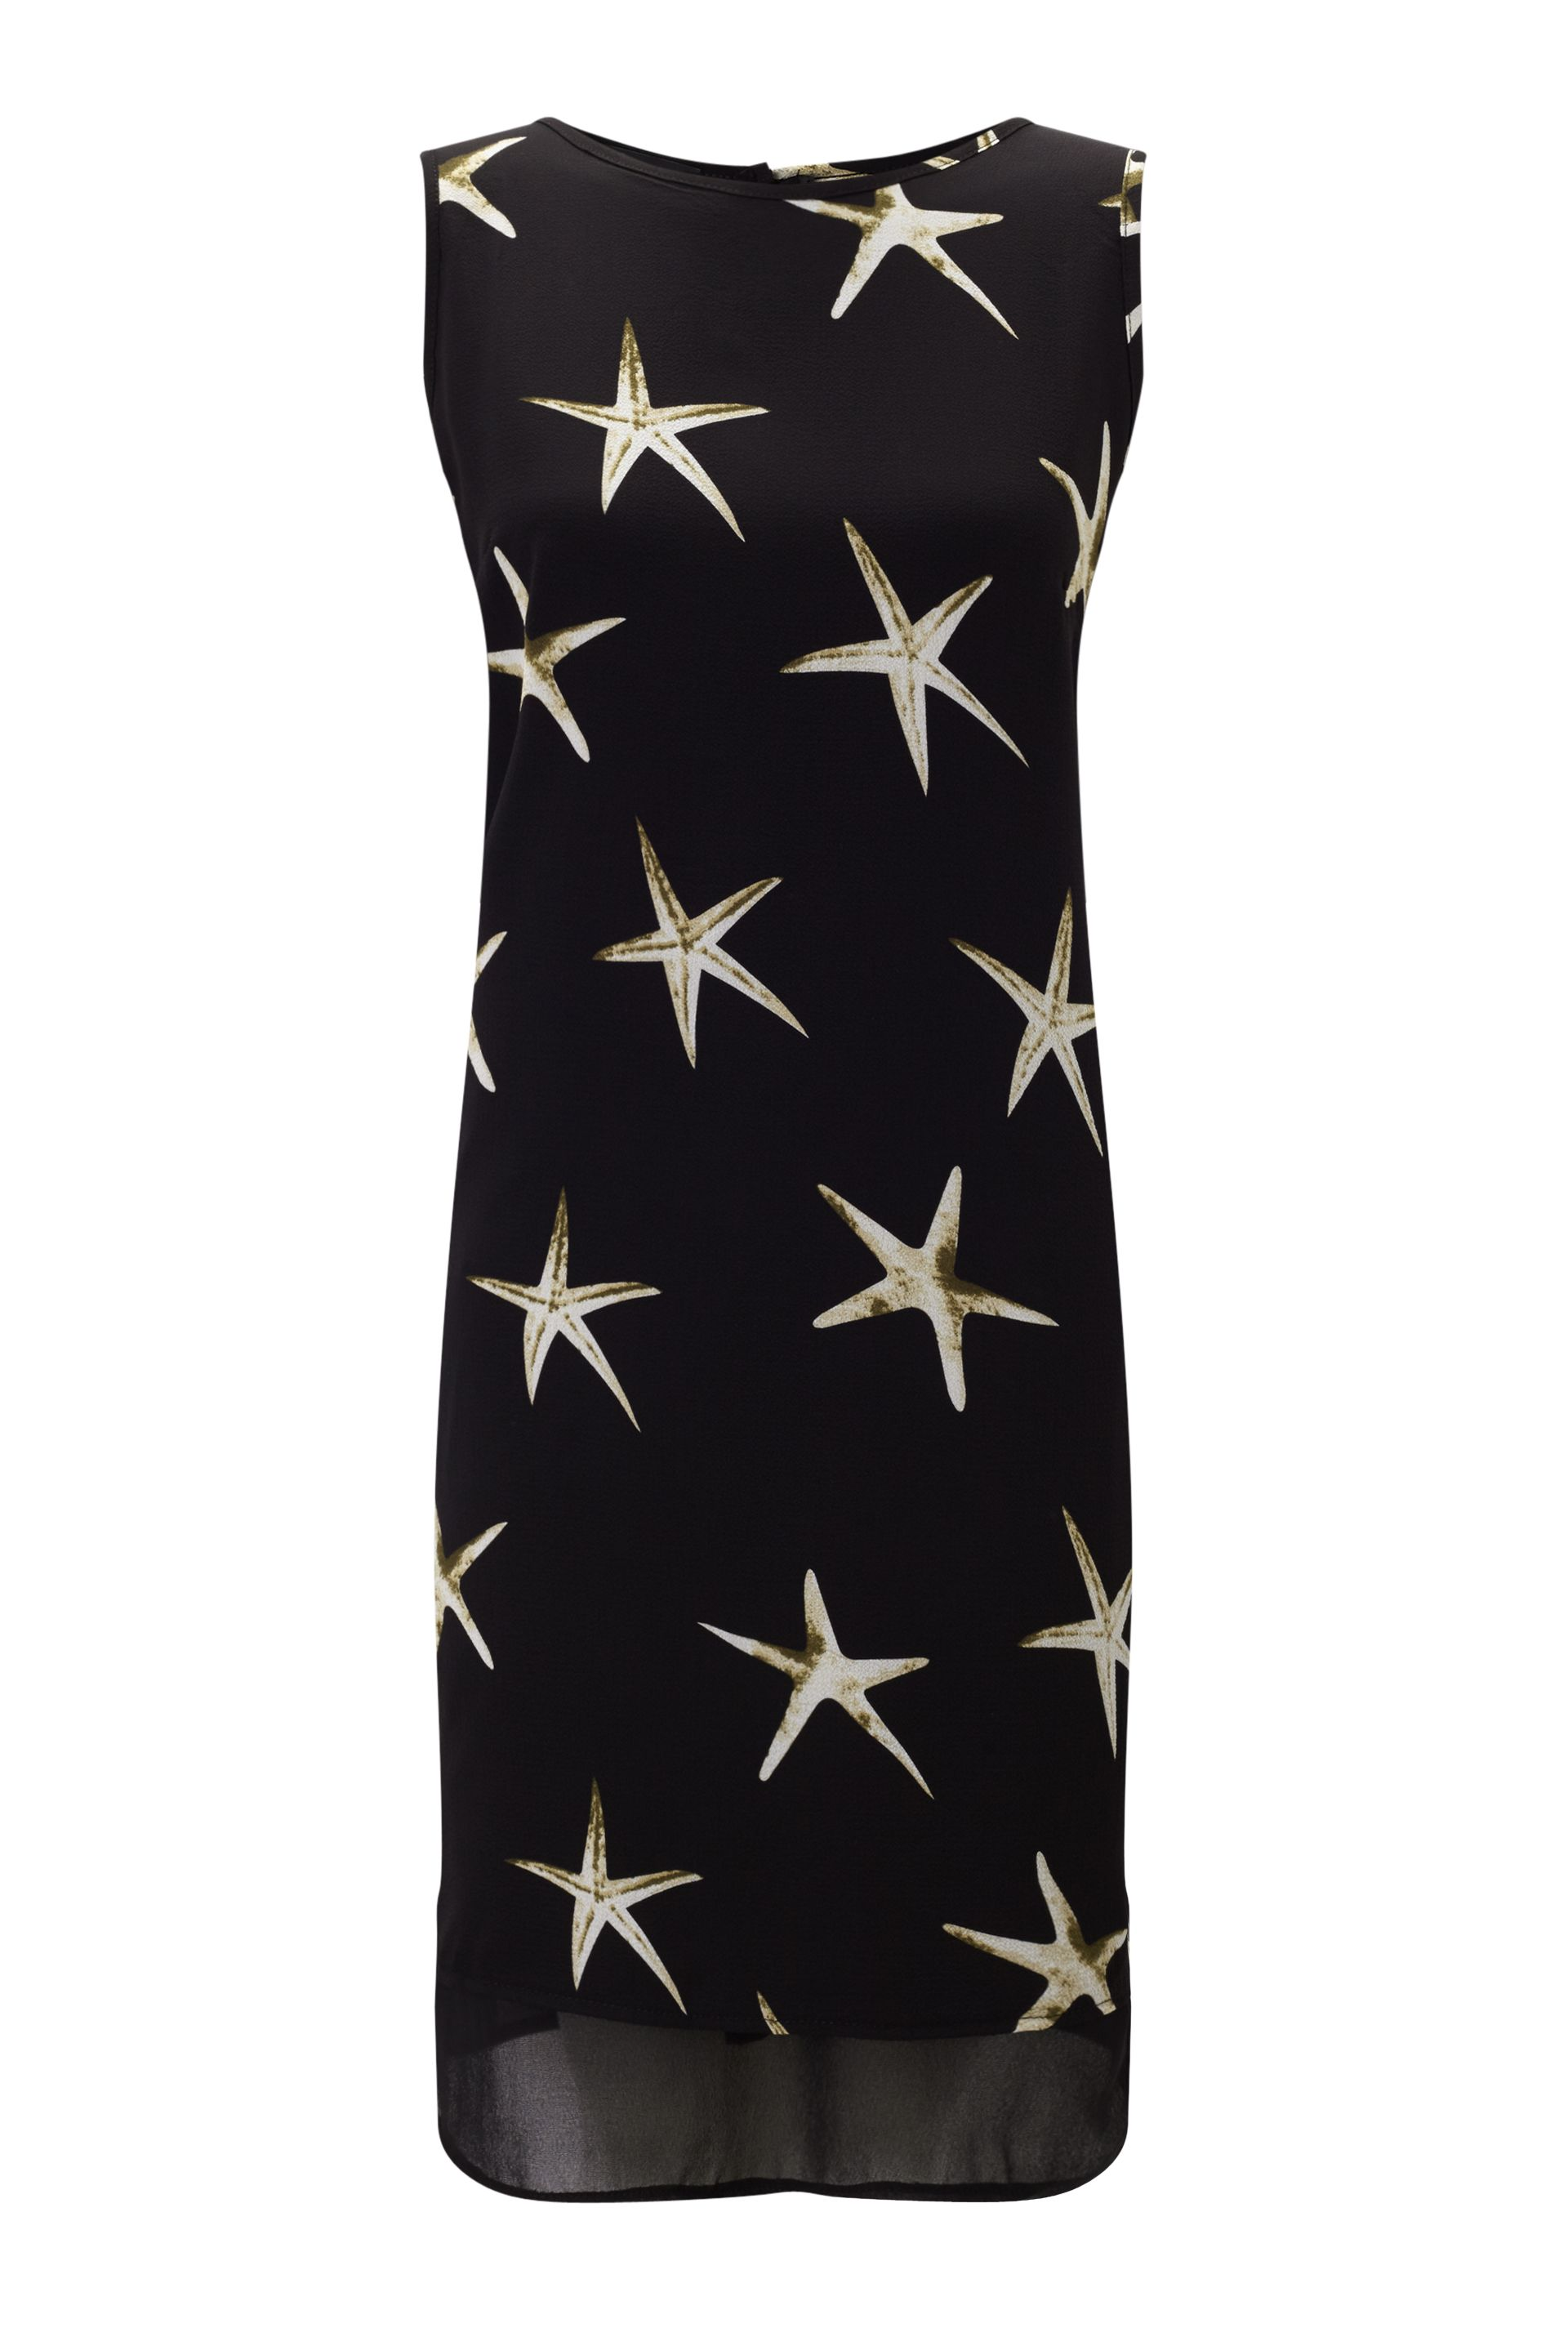 James Lakeland Starfish Print Dress, Black